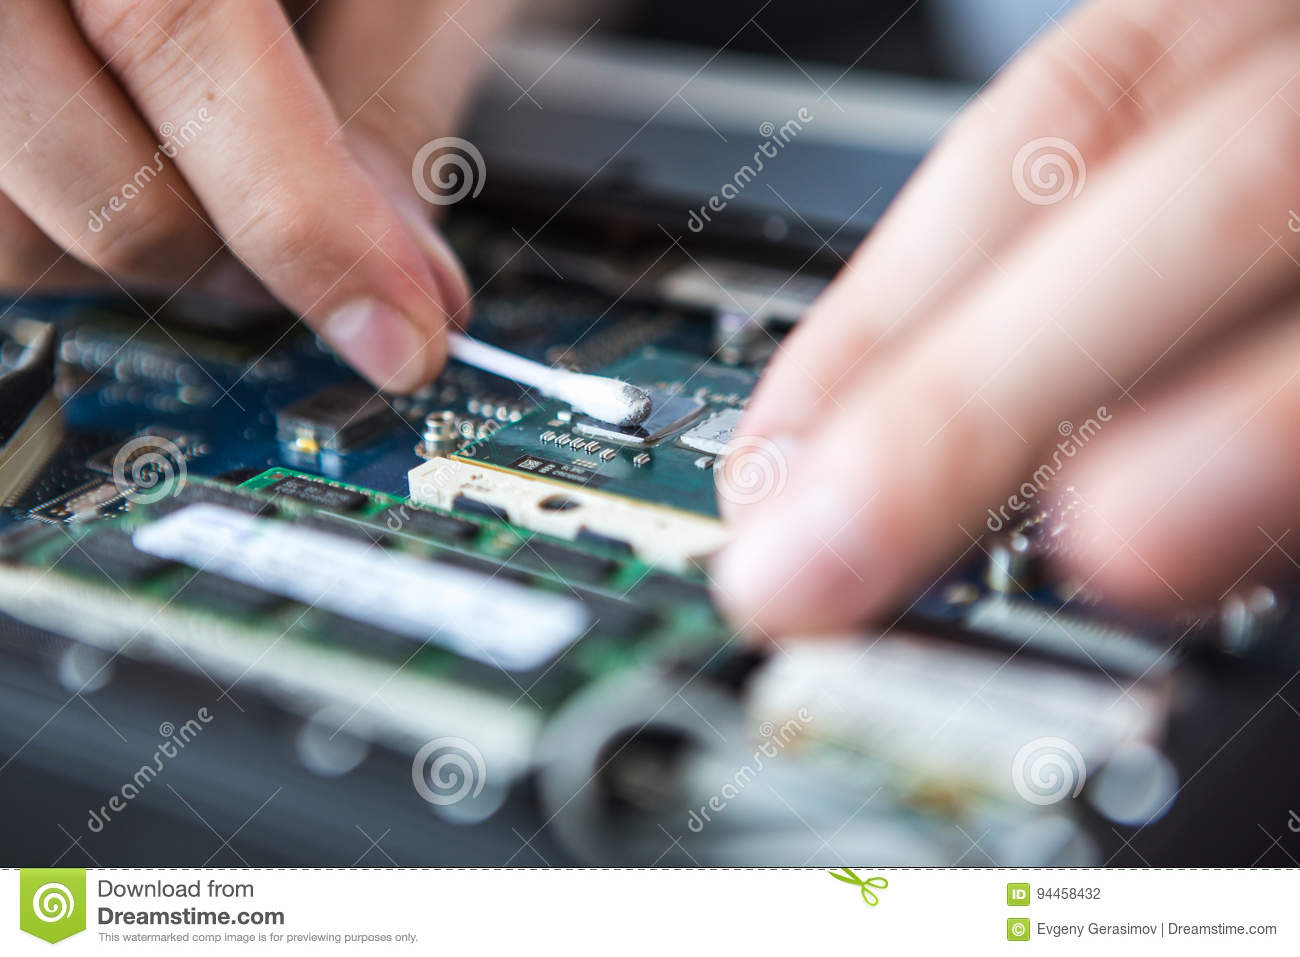 Man Examines Laptop PC Clean Thermal Paste Stock Photo